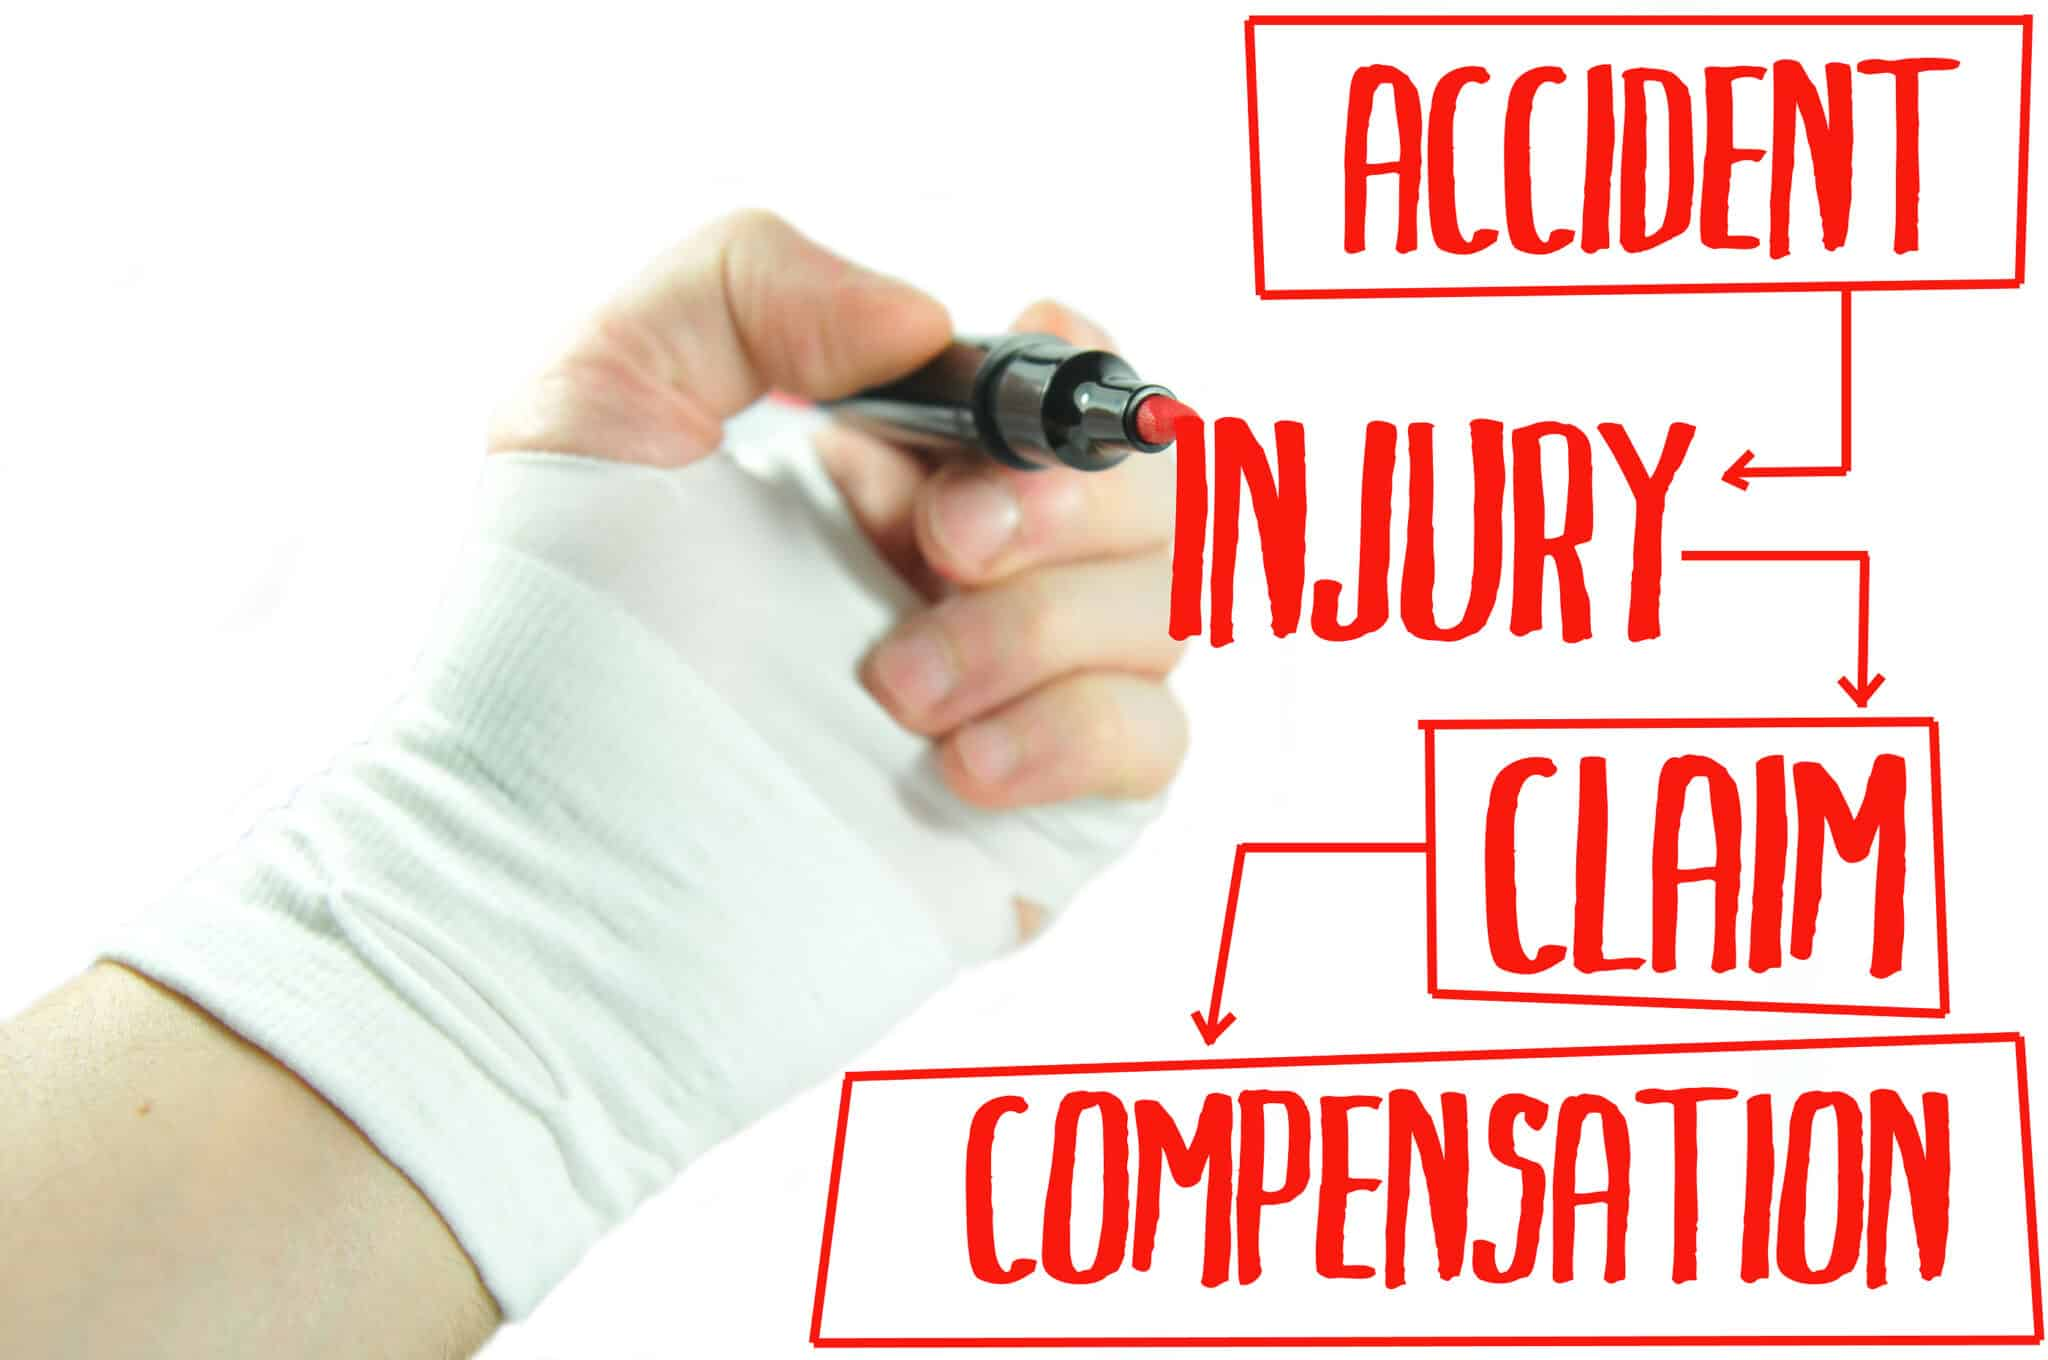 """Hand in cast writing """"Accident, Injury, Claim, Compensation"""""""